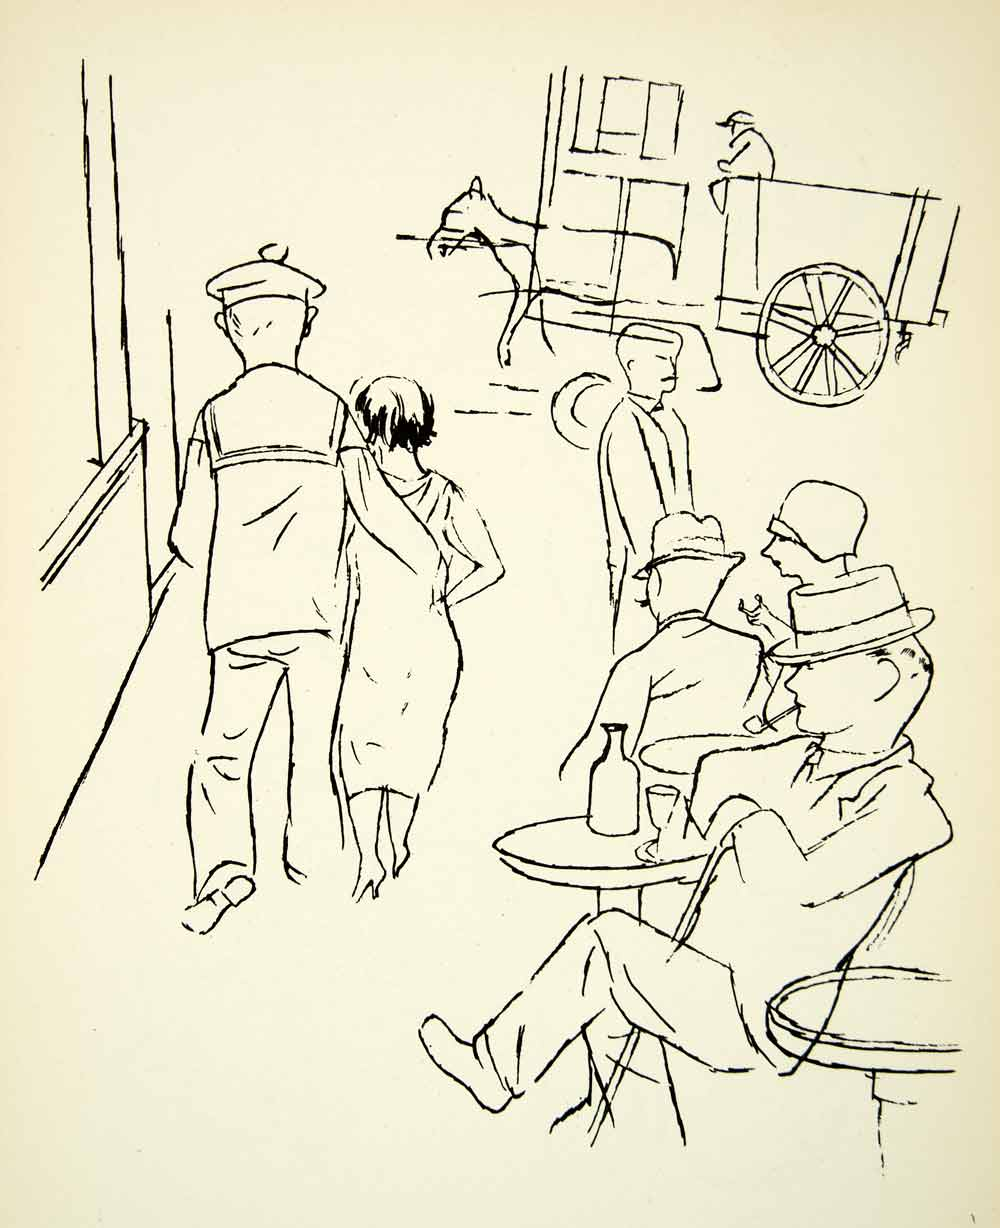 Lithograph Street Scene Seven Days George Grosz Cafe Horse Figures